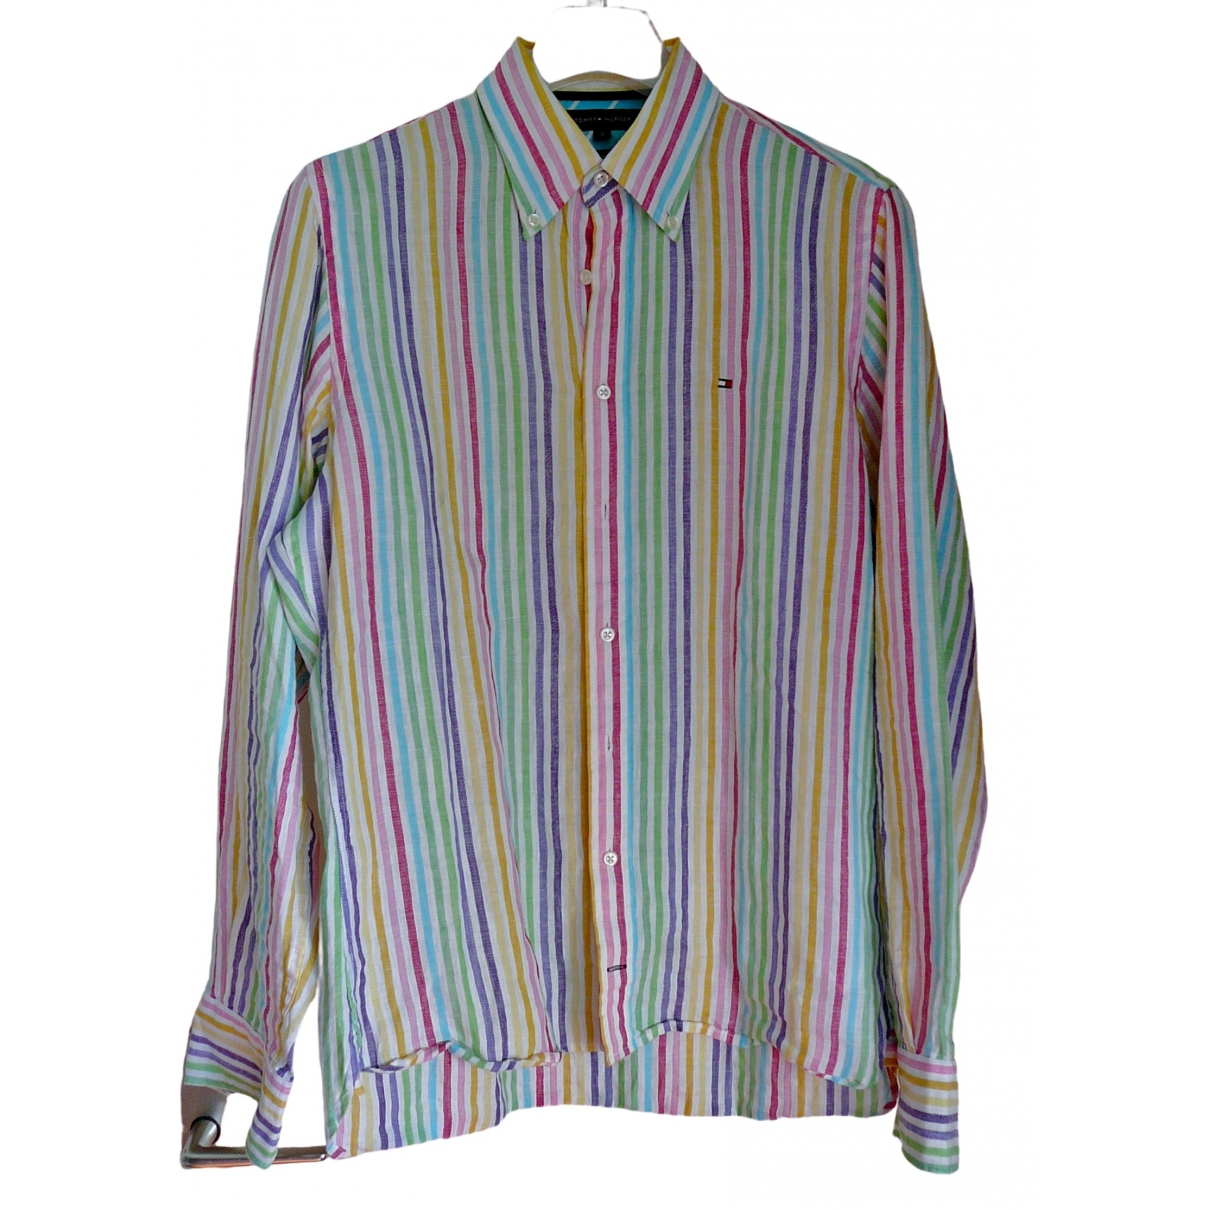 Tommy Hilfiger \N Multicolour Linen Shirts for Men S International